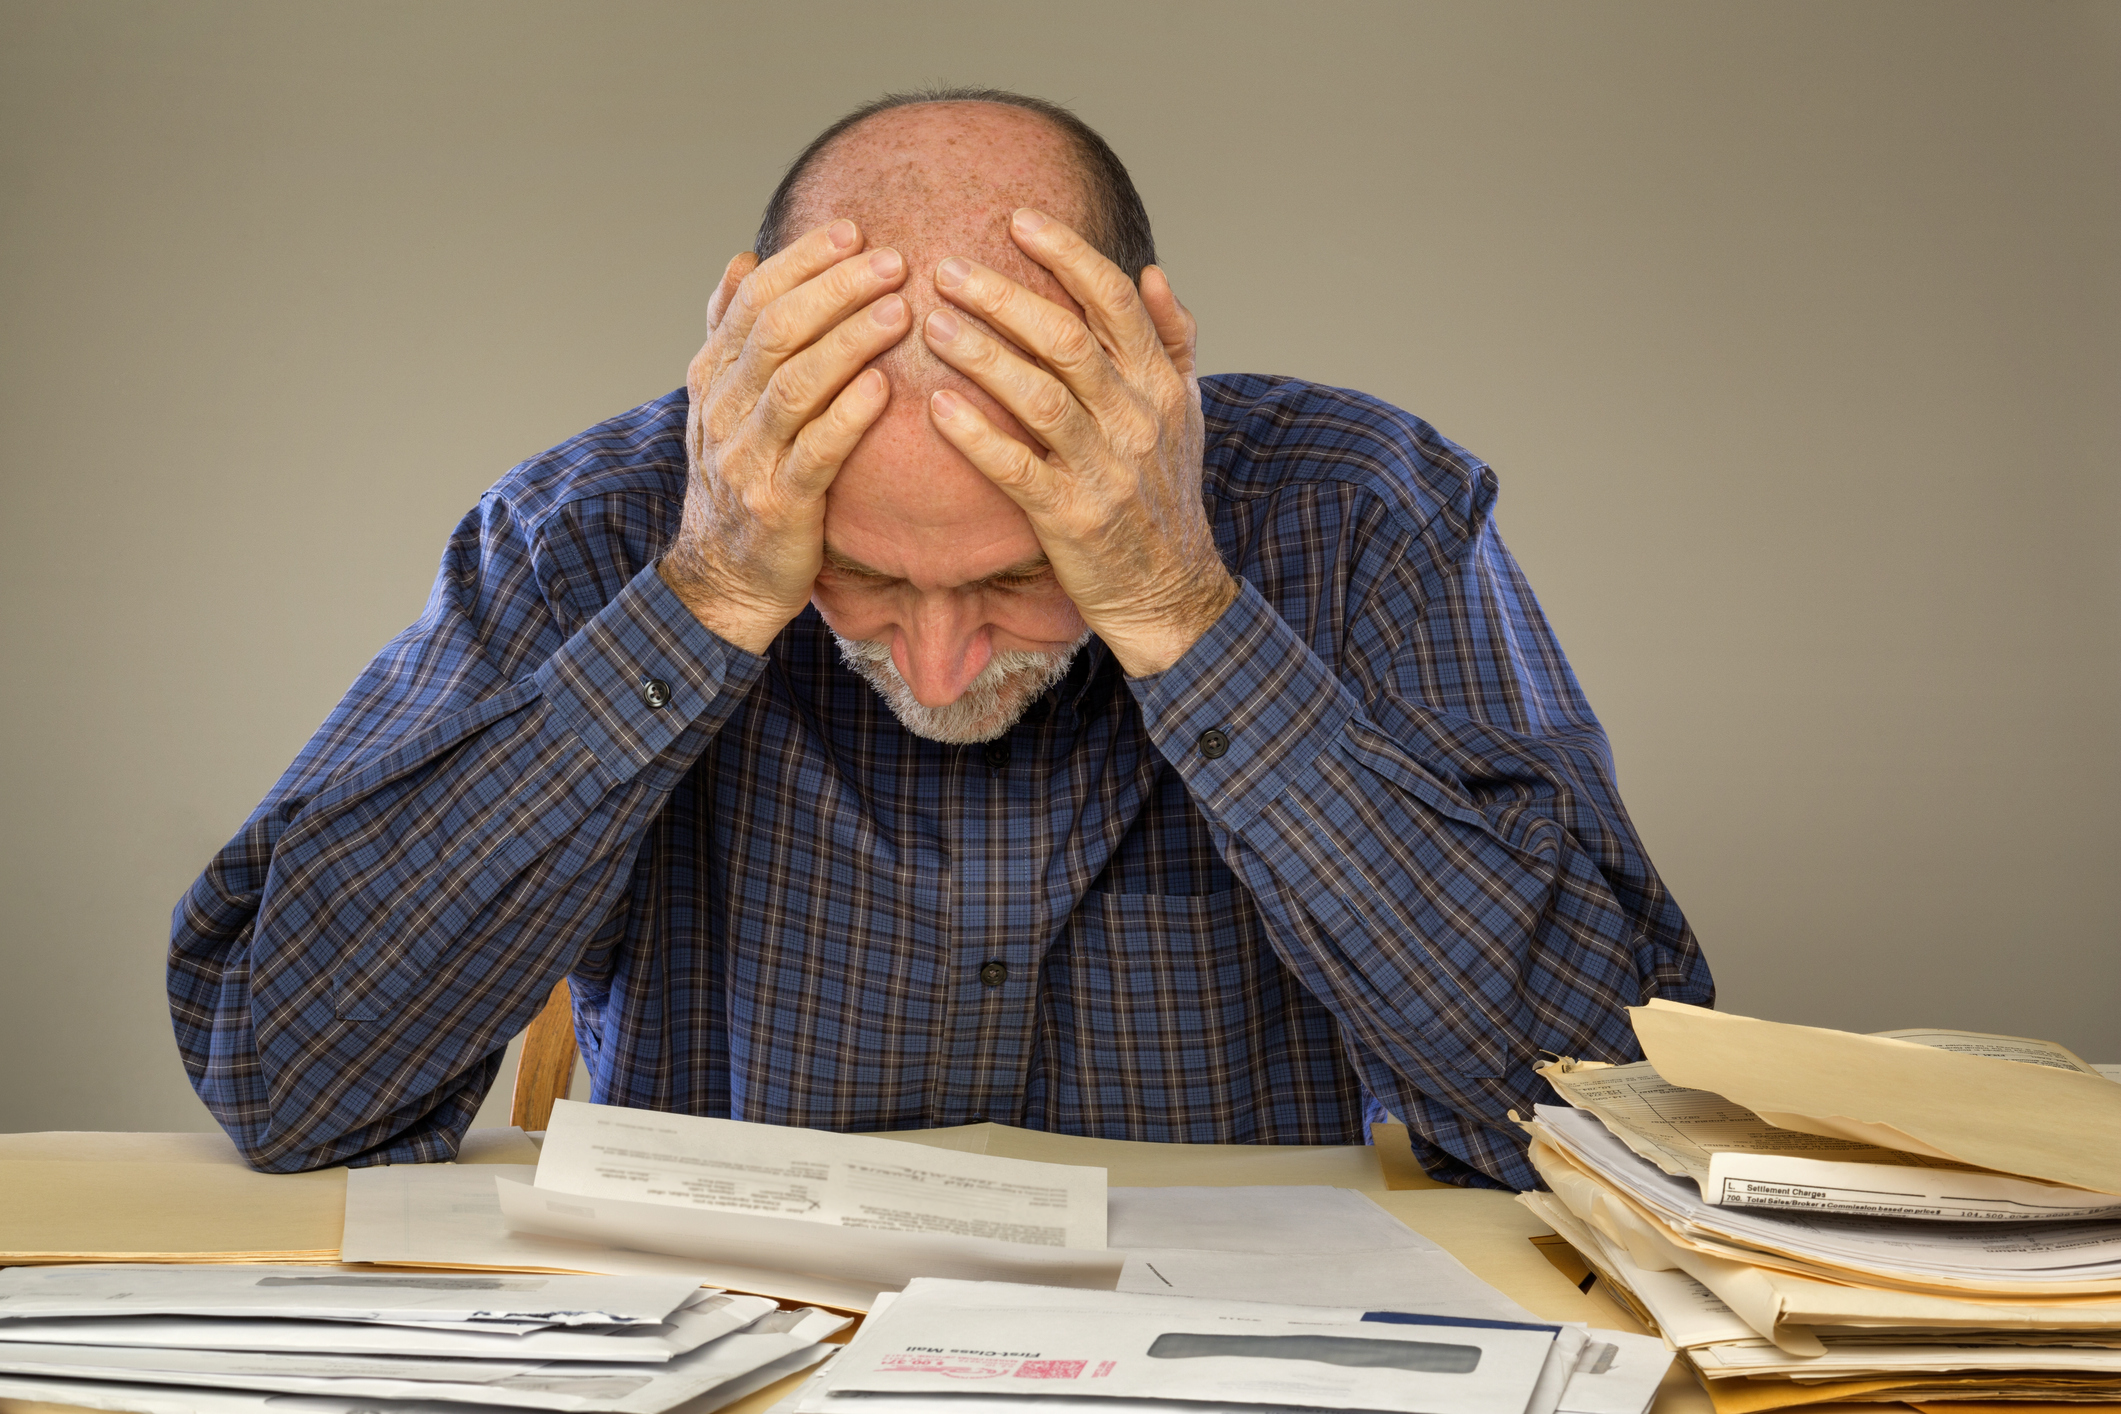 Frustrated man looking at bills on a desk.